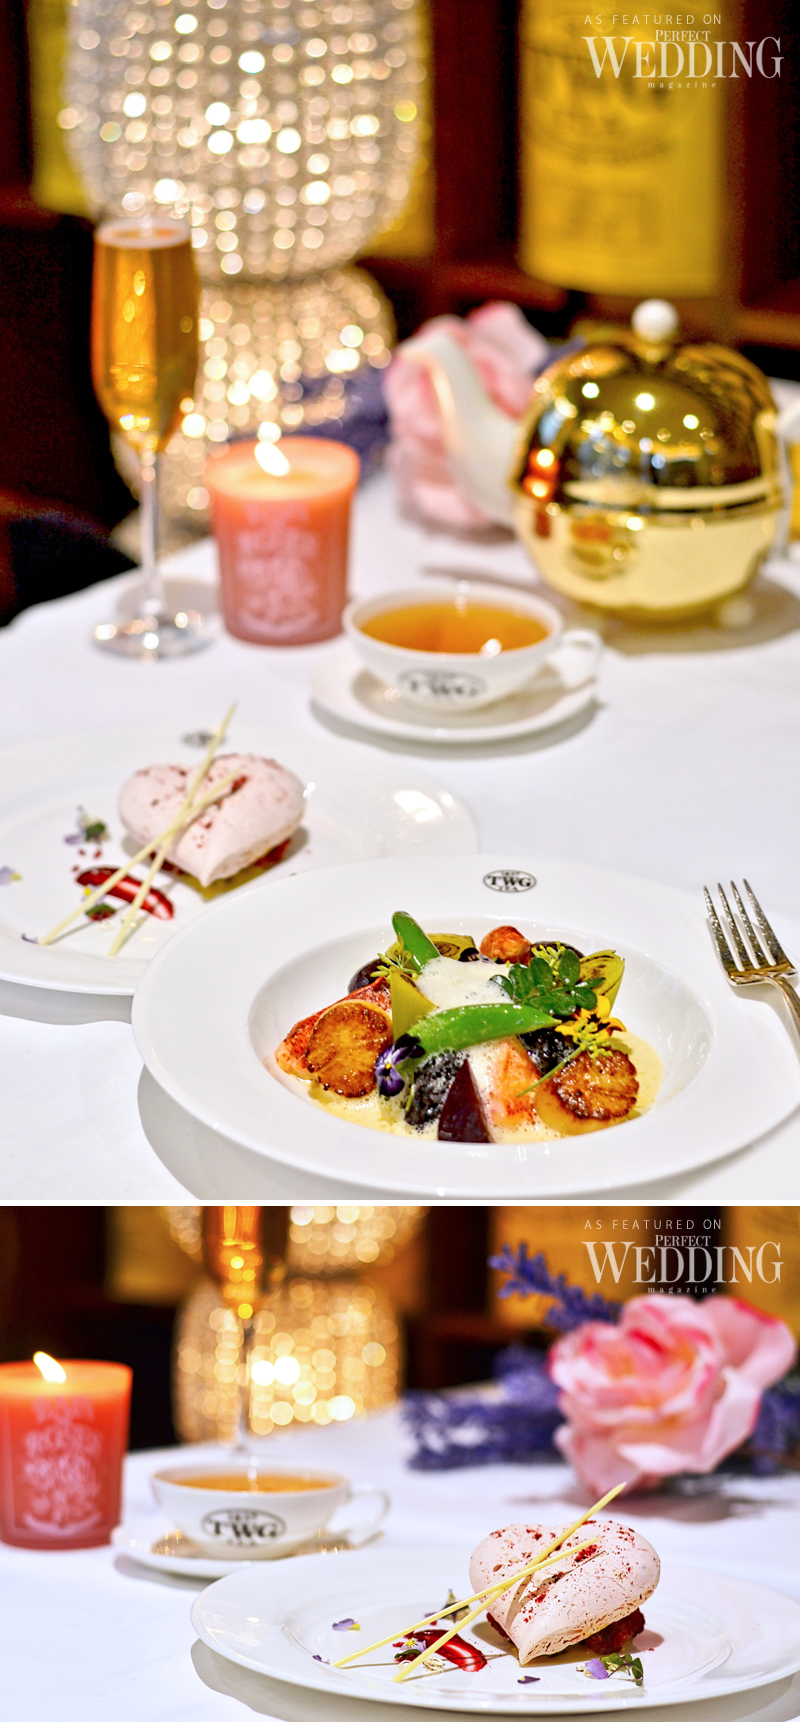 TWG Tea, TWG Tea Vancouver, Valentine's Day celebration, Valentine's Day Dinner in Vancouver, Perfect wedding Magazine, Perfect wedding Blog, TWG Tea Salon and Boutique, Tea Gastronomy